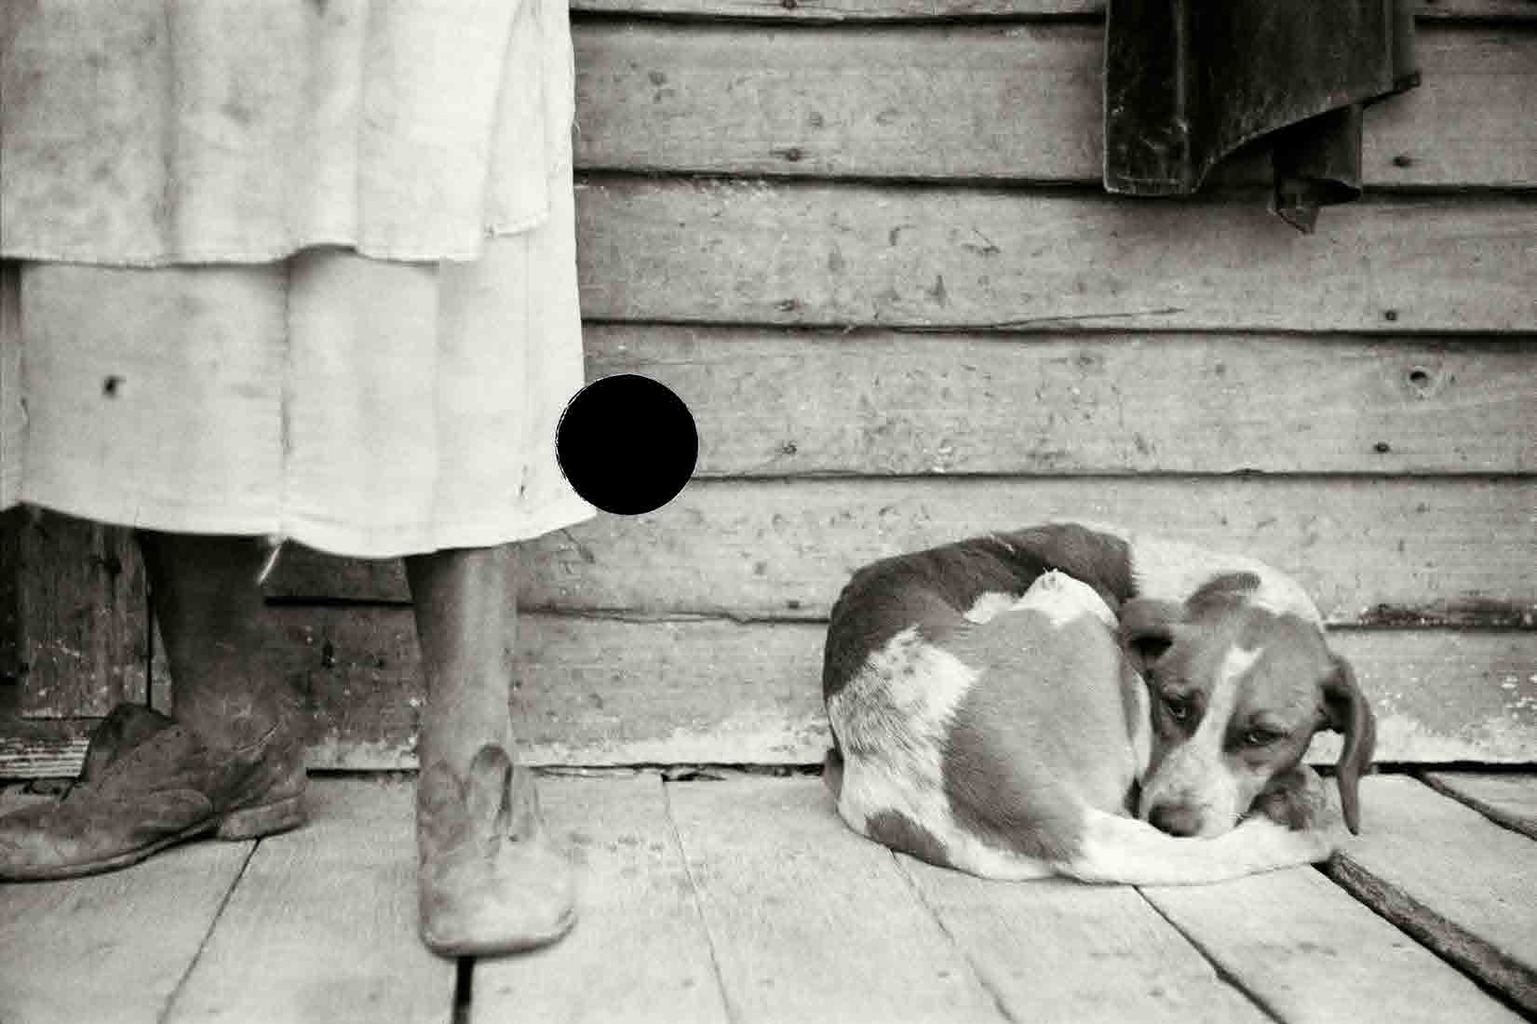 Sharecropper and dog. North Carolina. 1938. John Vachon